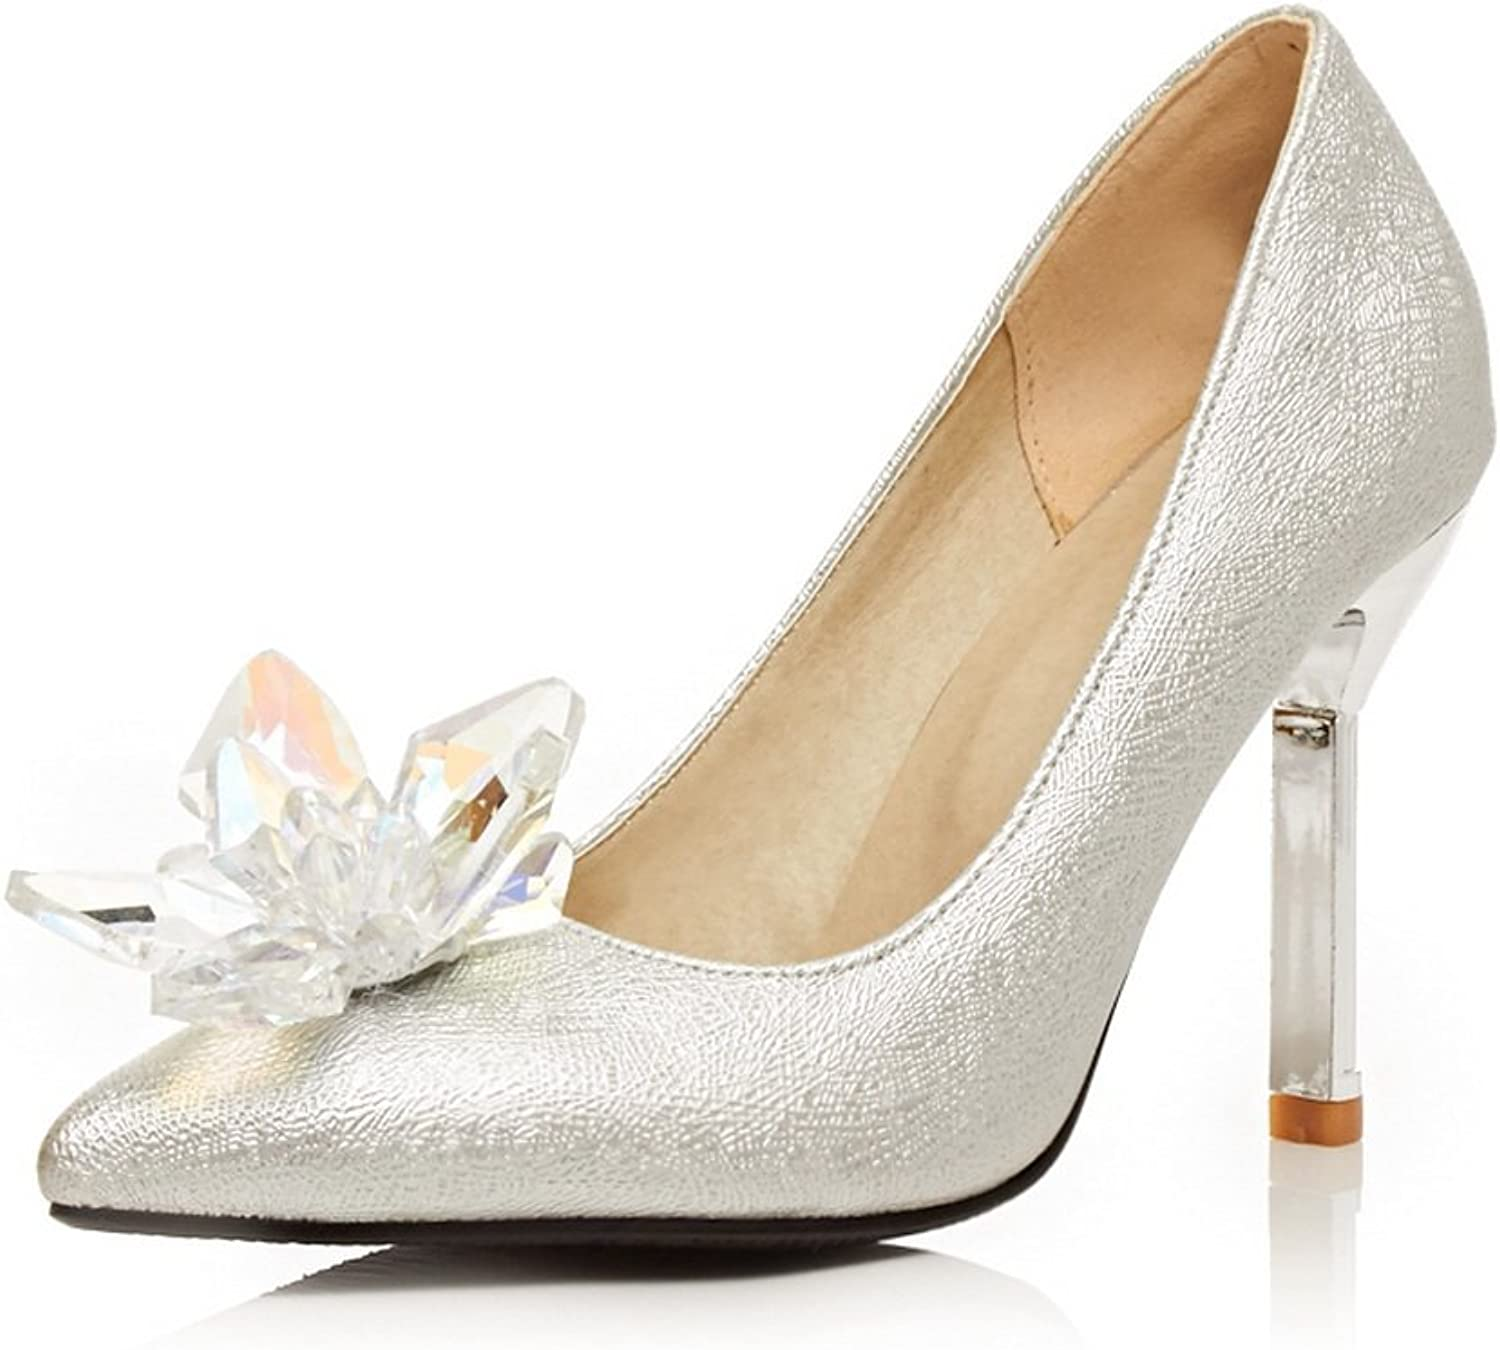 1TO9 Girls Sequins Glass Diamond Low-Cut Uppers Silver Rubber Pumps-shoes - 4.5 B(M) US